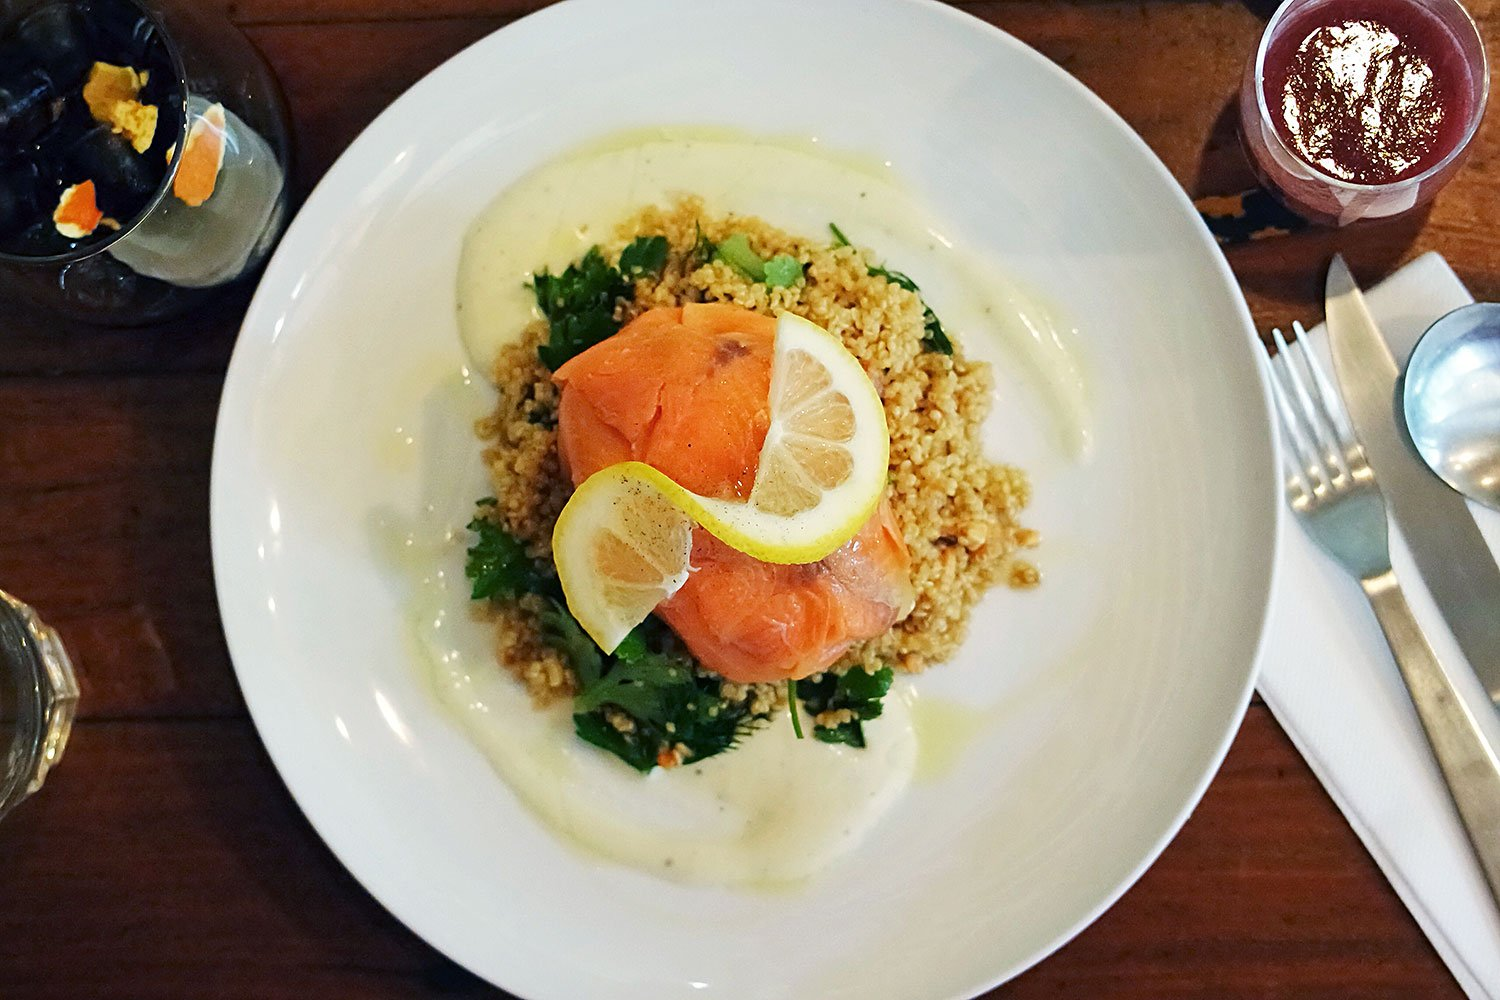 Dish for Single Origin's offering for Good Food Month 2014's Breakfast Club: Watermelon and Strawberry shot, Smoked Trout, Avocado and Poached Egg Parcel, with an Organic Quinoa, Herb and Nut Salad, and a honeycomb infused Geisha Brew, with tea or coffee for $20.